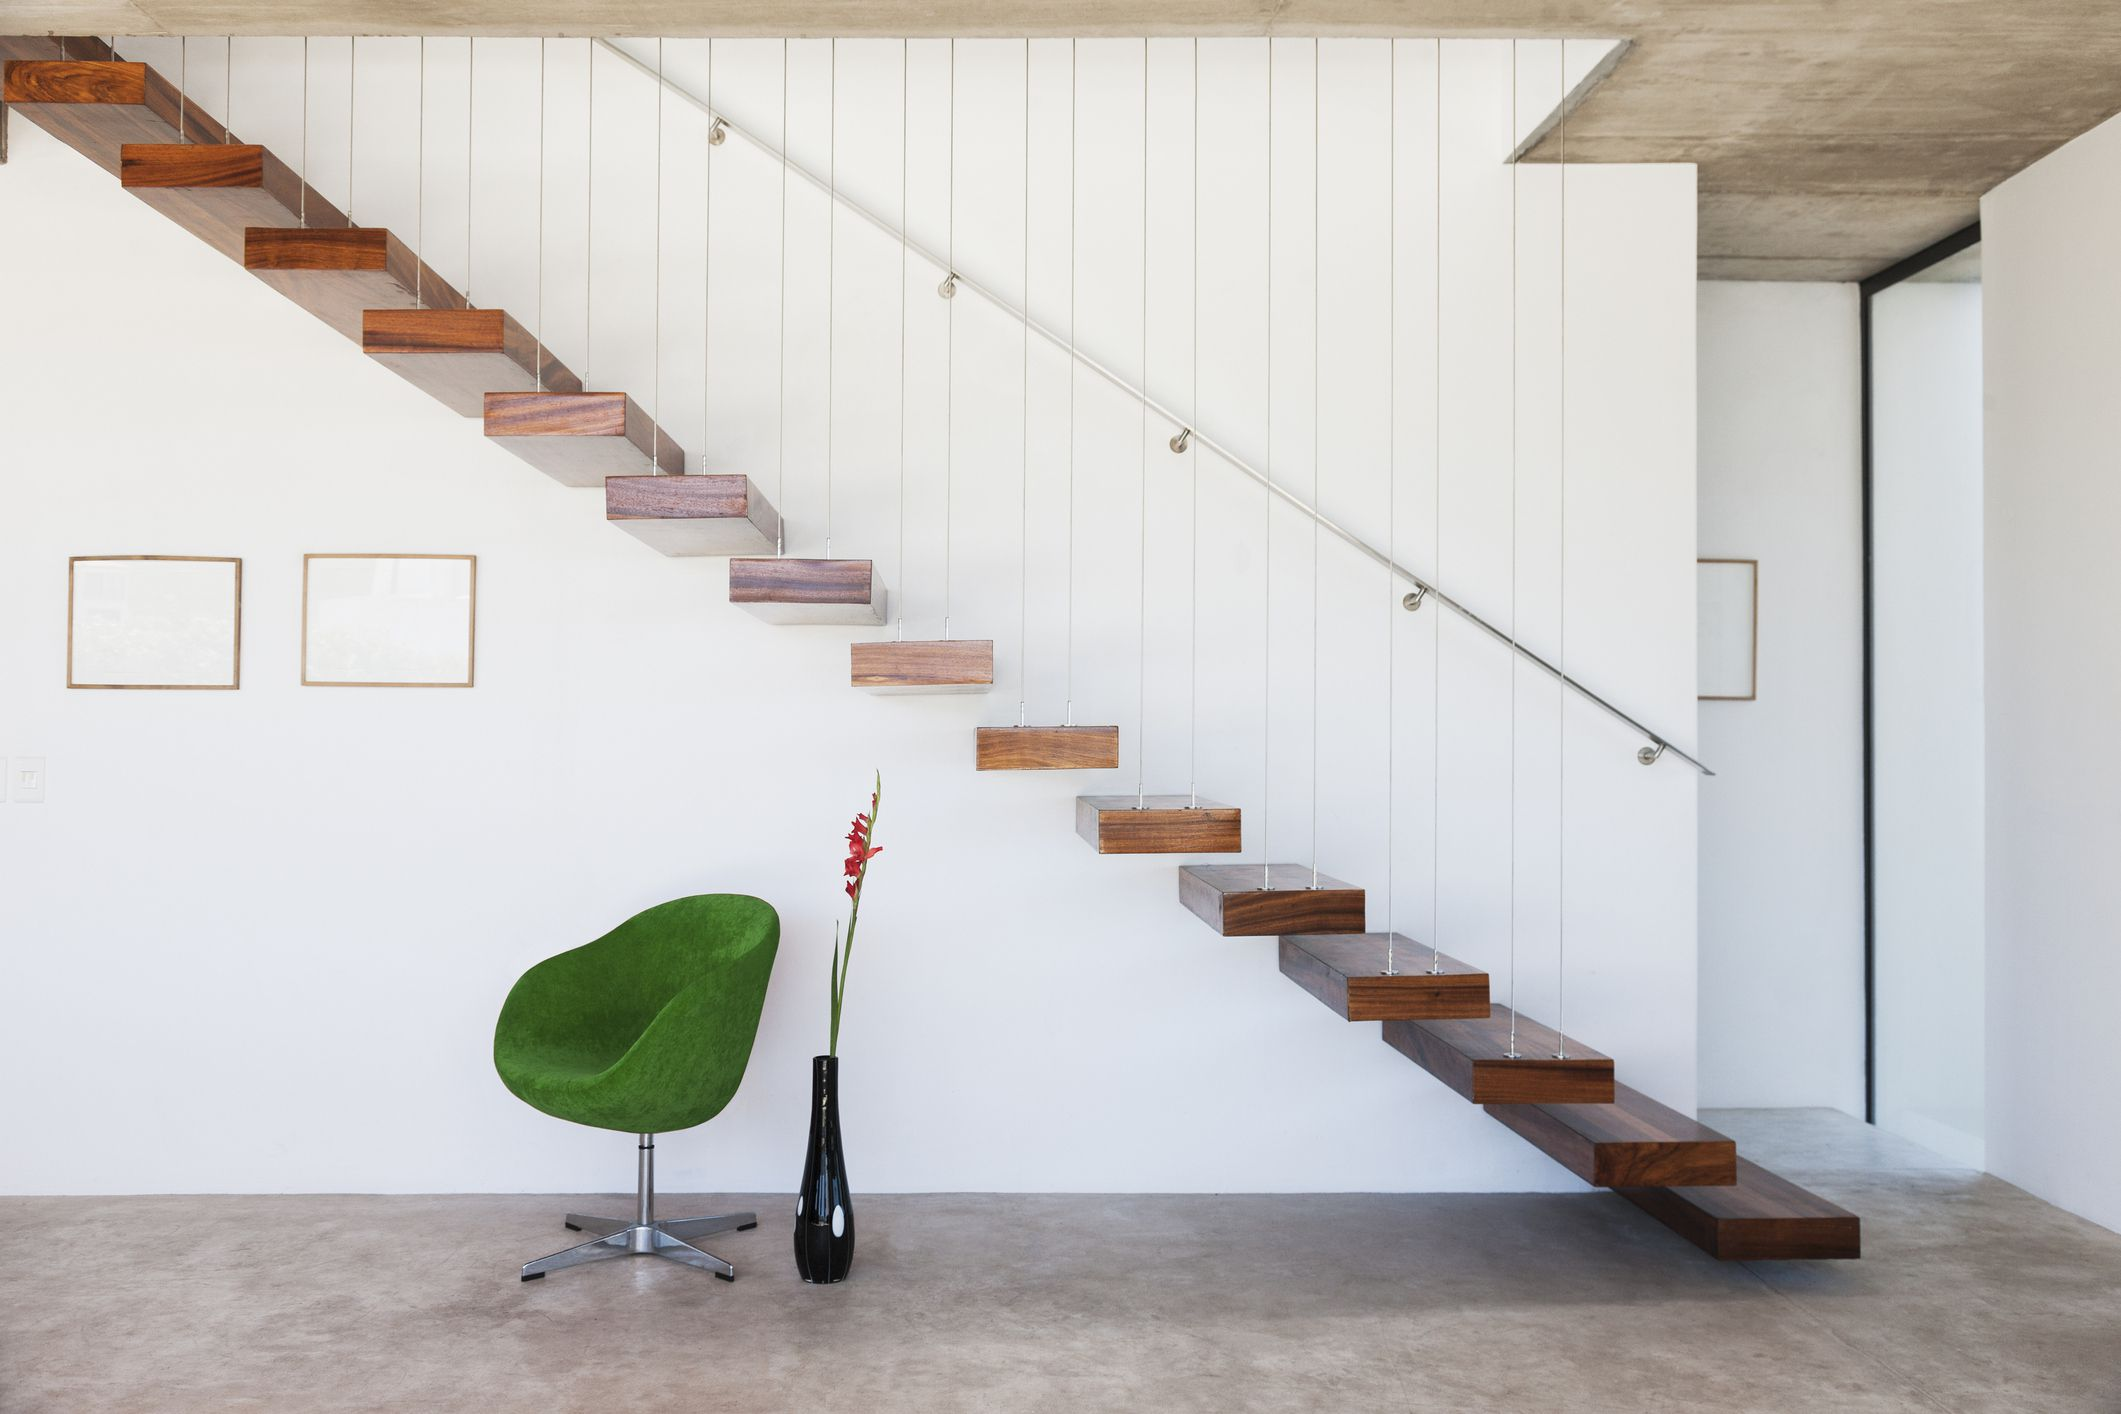 Code requirements risers treads stair width and more - Interior stair treads and risers ...